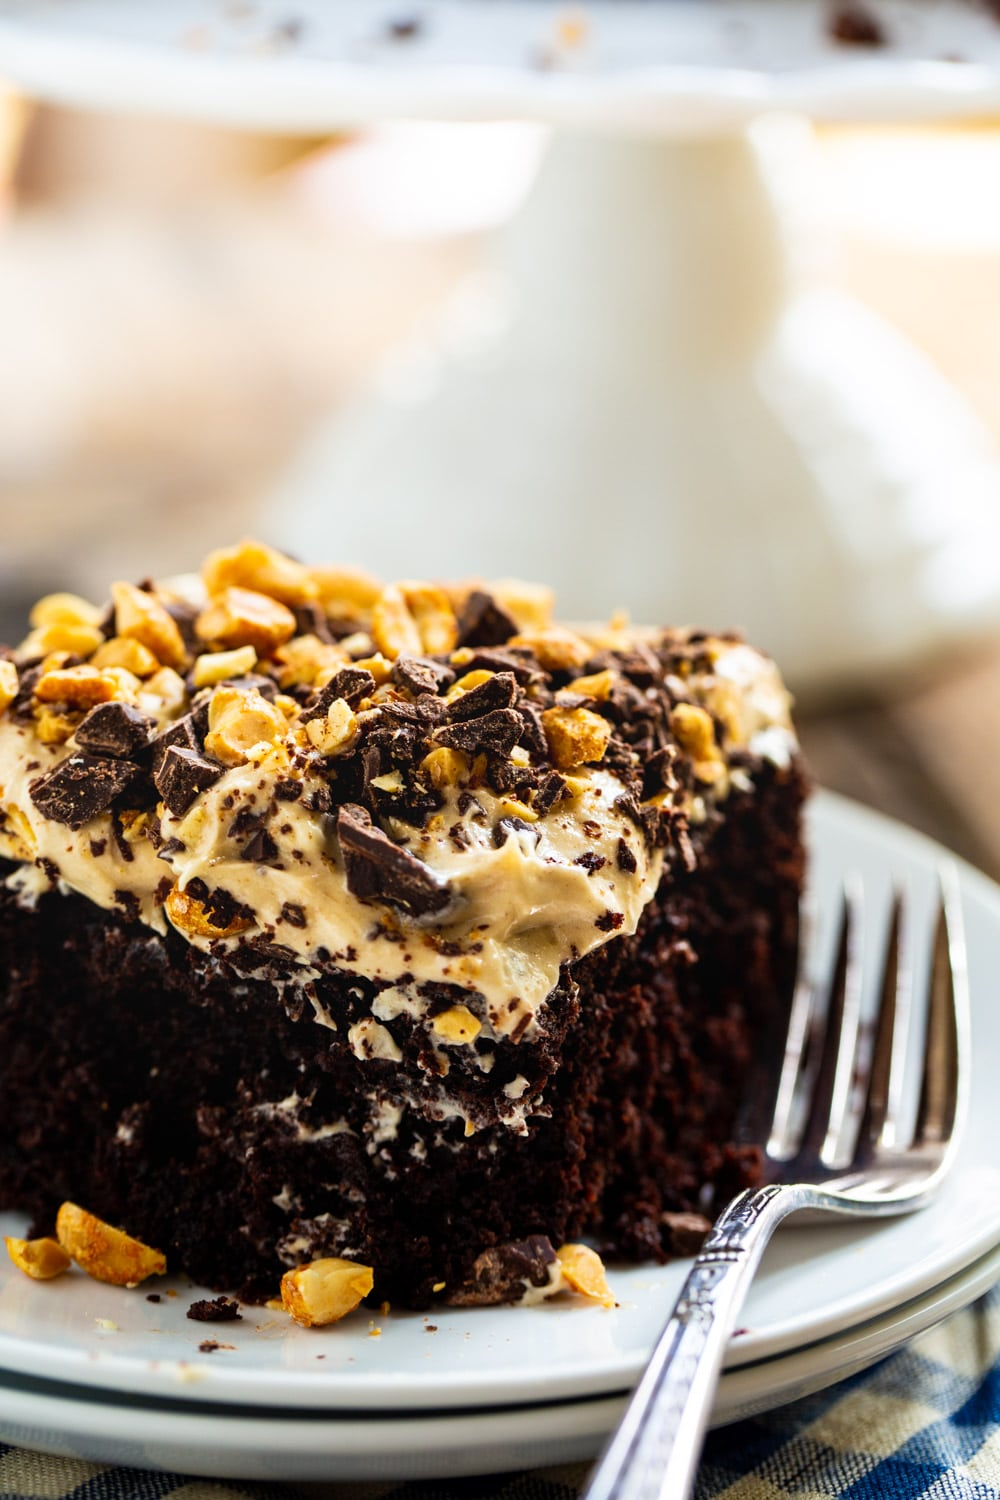 Slice of cake topped with peanuts on a plate.